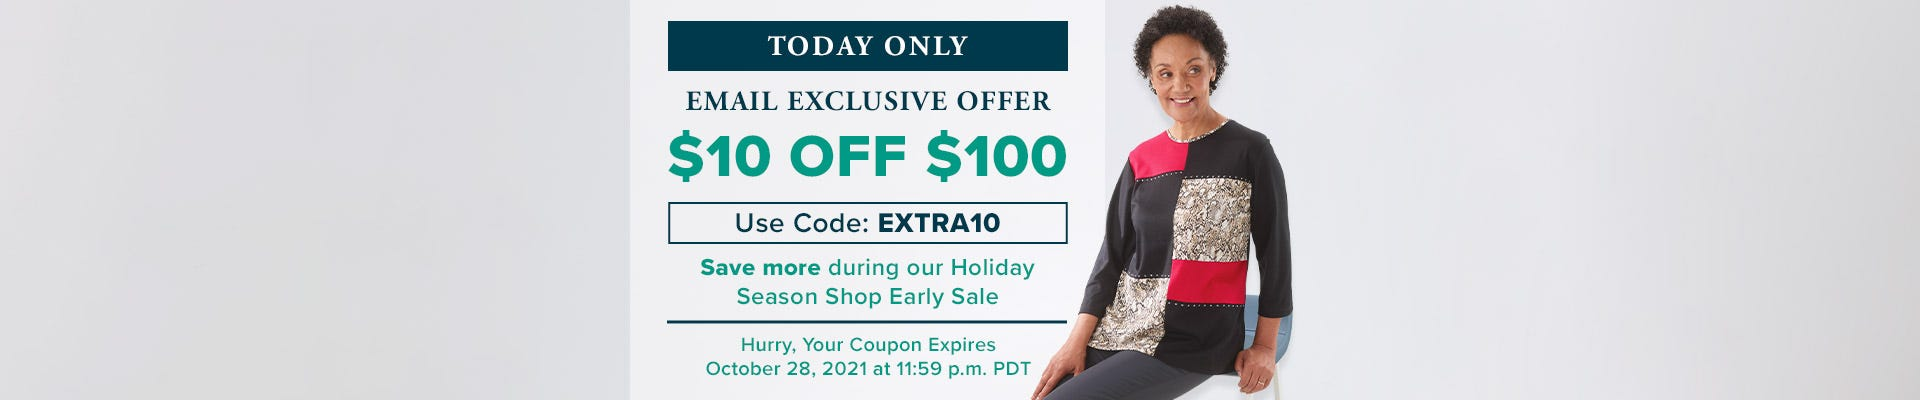 Today Only - Email Exclusive Offer - Save More During Our Holiday Season Shop Early Sale - $10 Off $100 - Use Code EXTRA10 - Hurry, Your Coupon Expires October 28, 2021 at 11:59 p.m. PDT